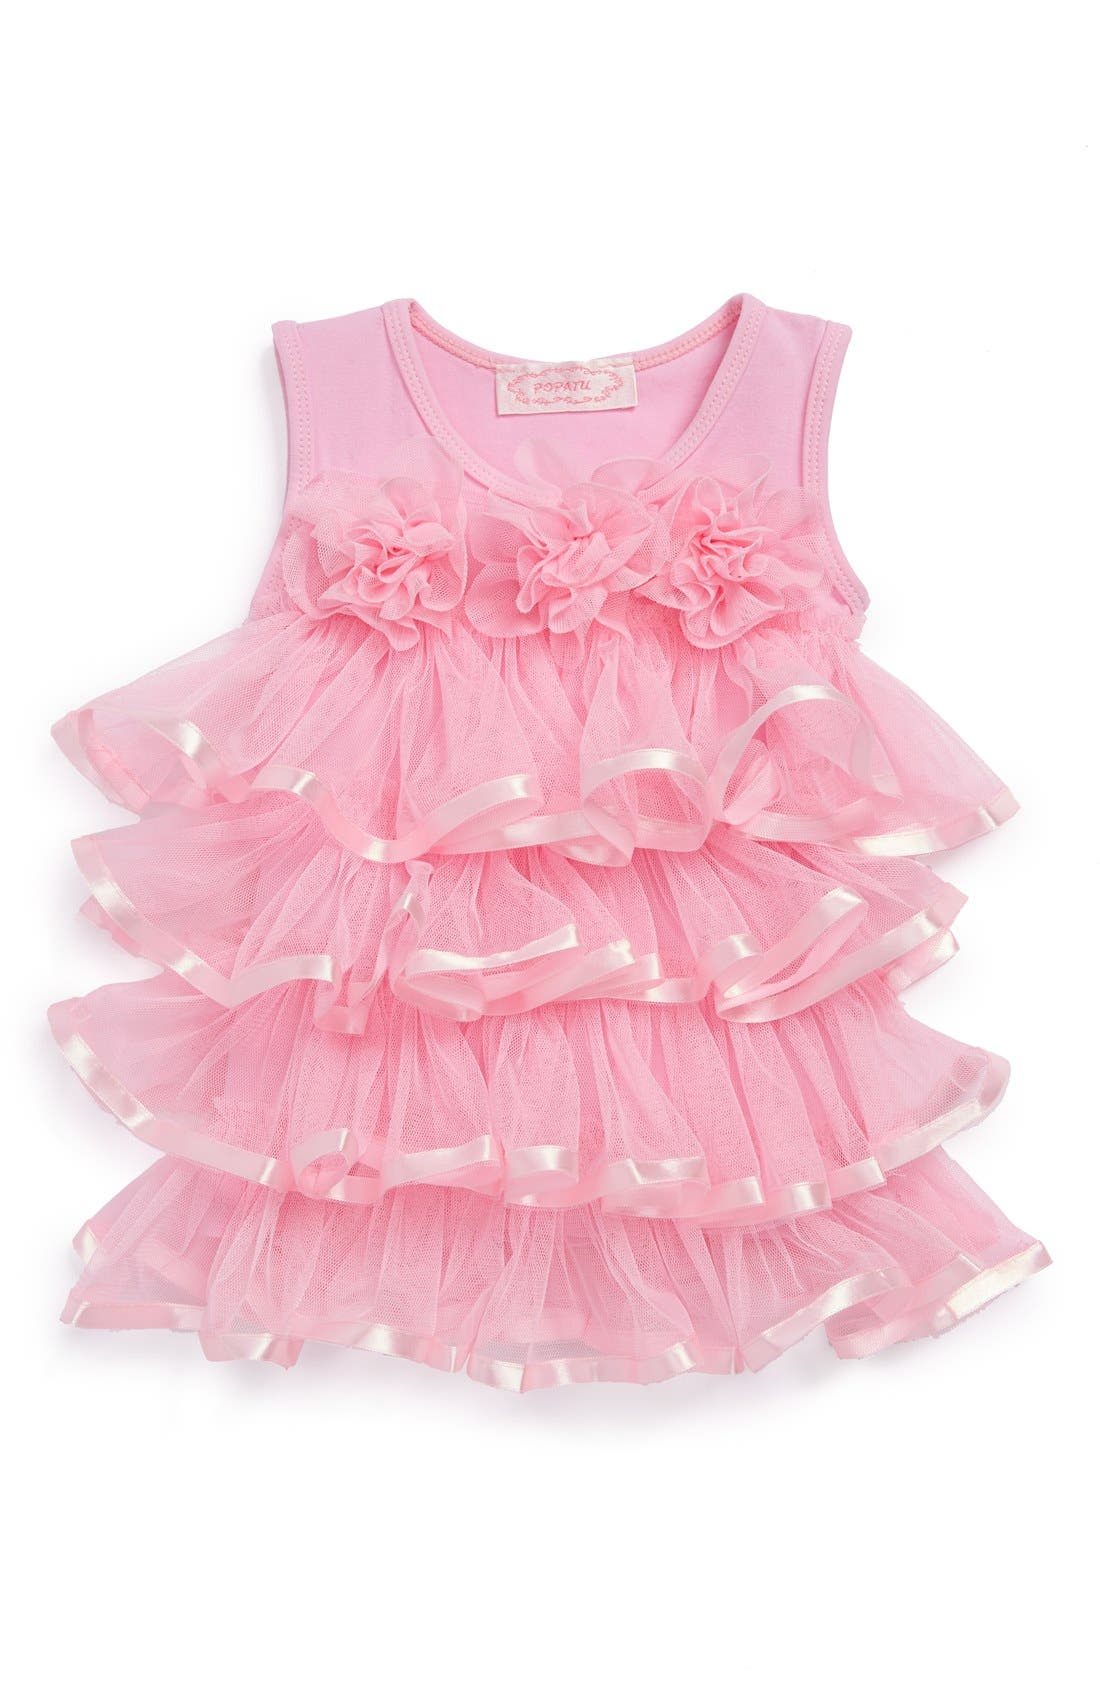 Ruffle Tiered Dress,                         Main,                         color, Pink